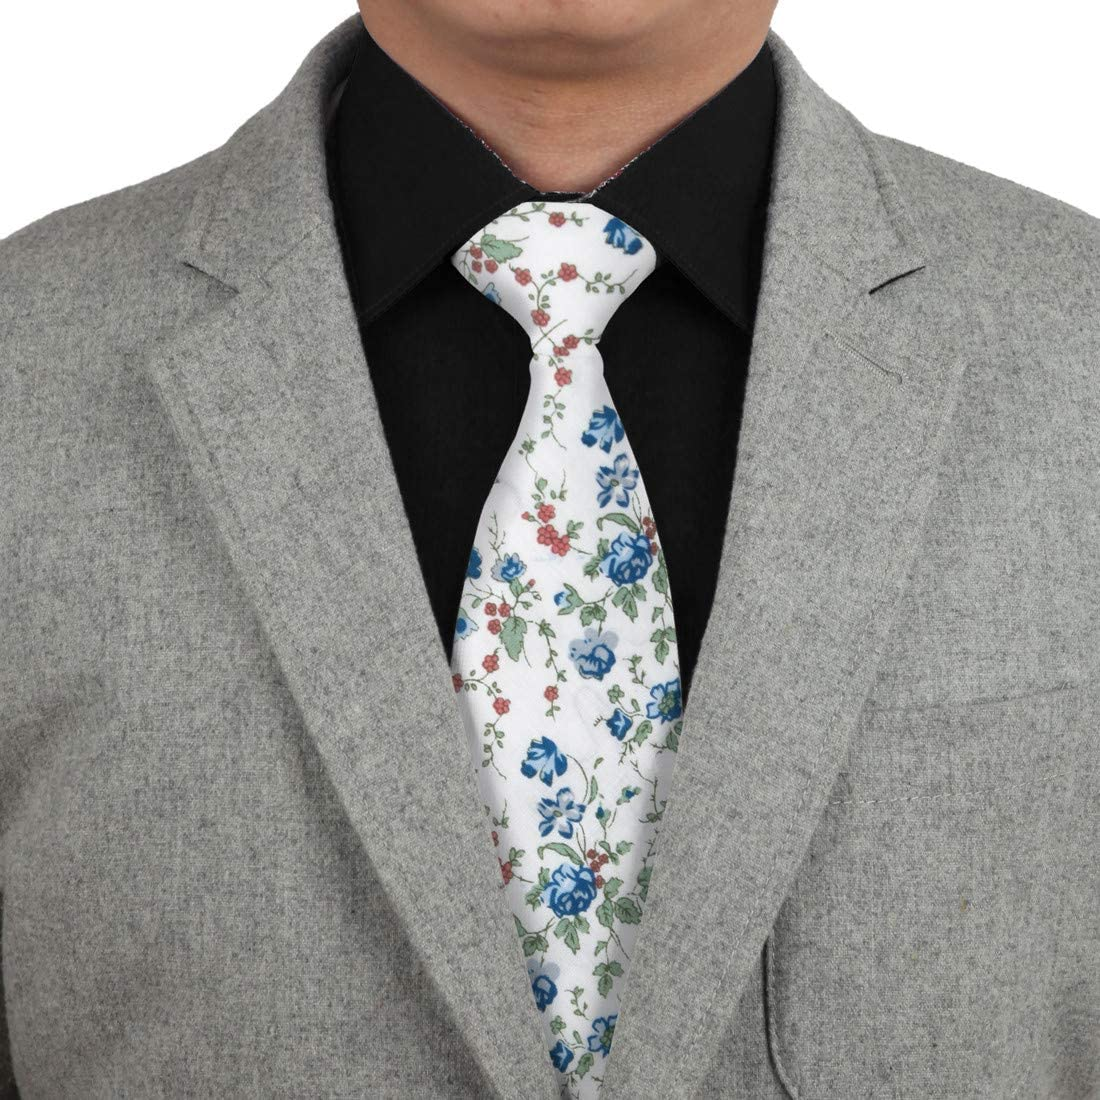 Dan Smith C.C.N.B.026 White Green Pink Red Casual Mens Floral Cotton Neck Tie Hanky